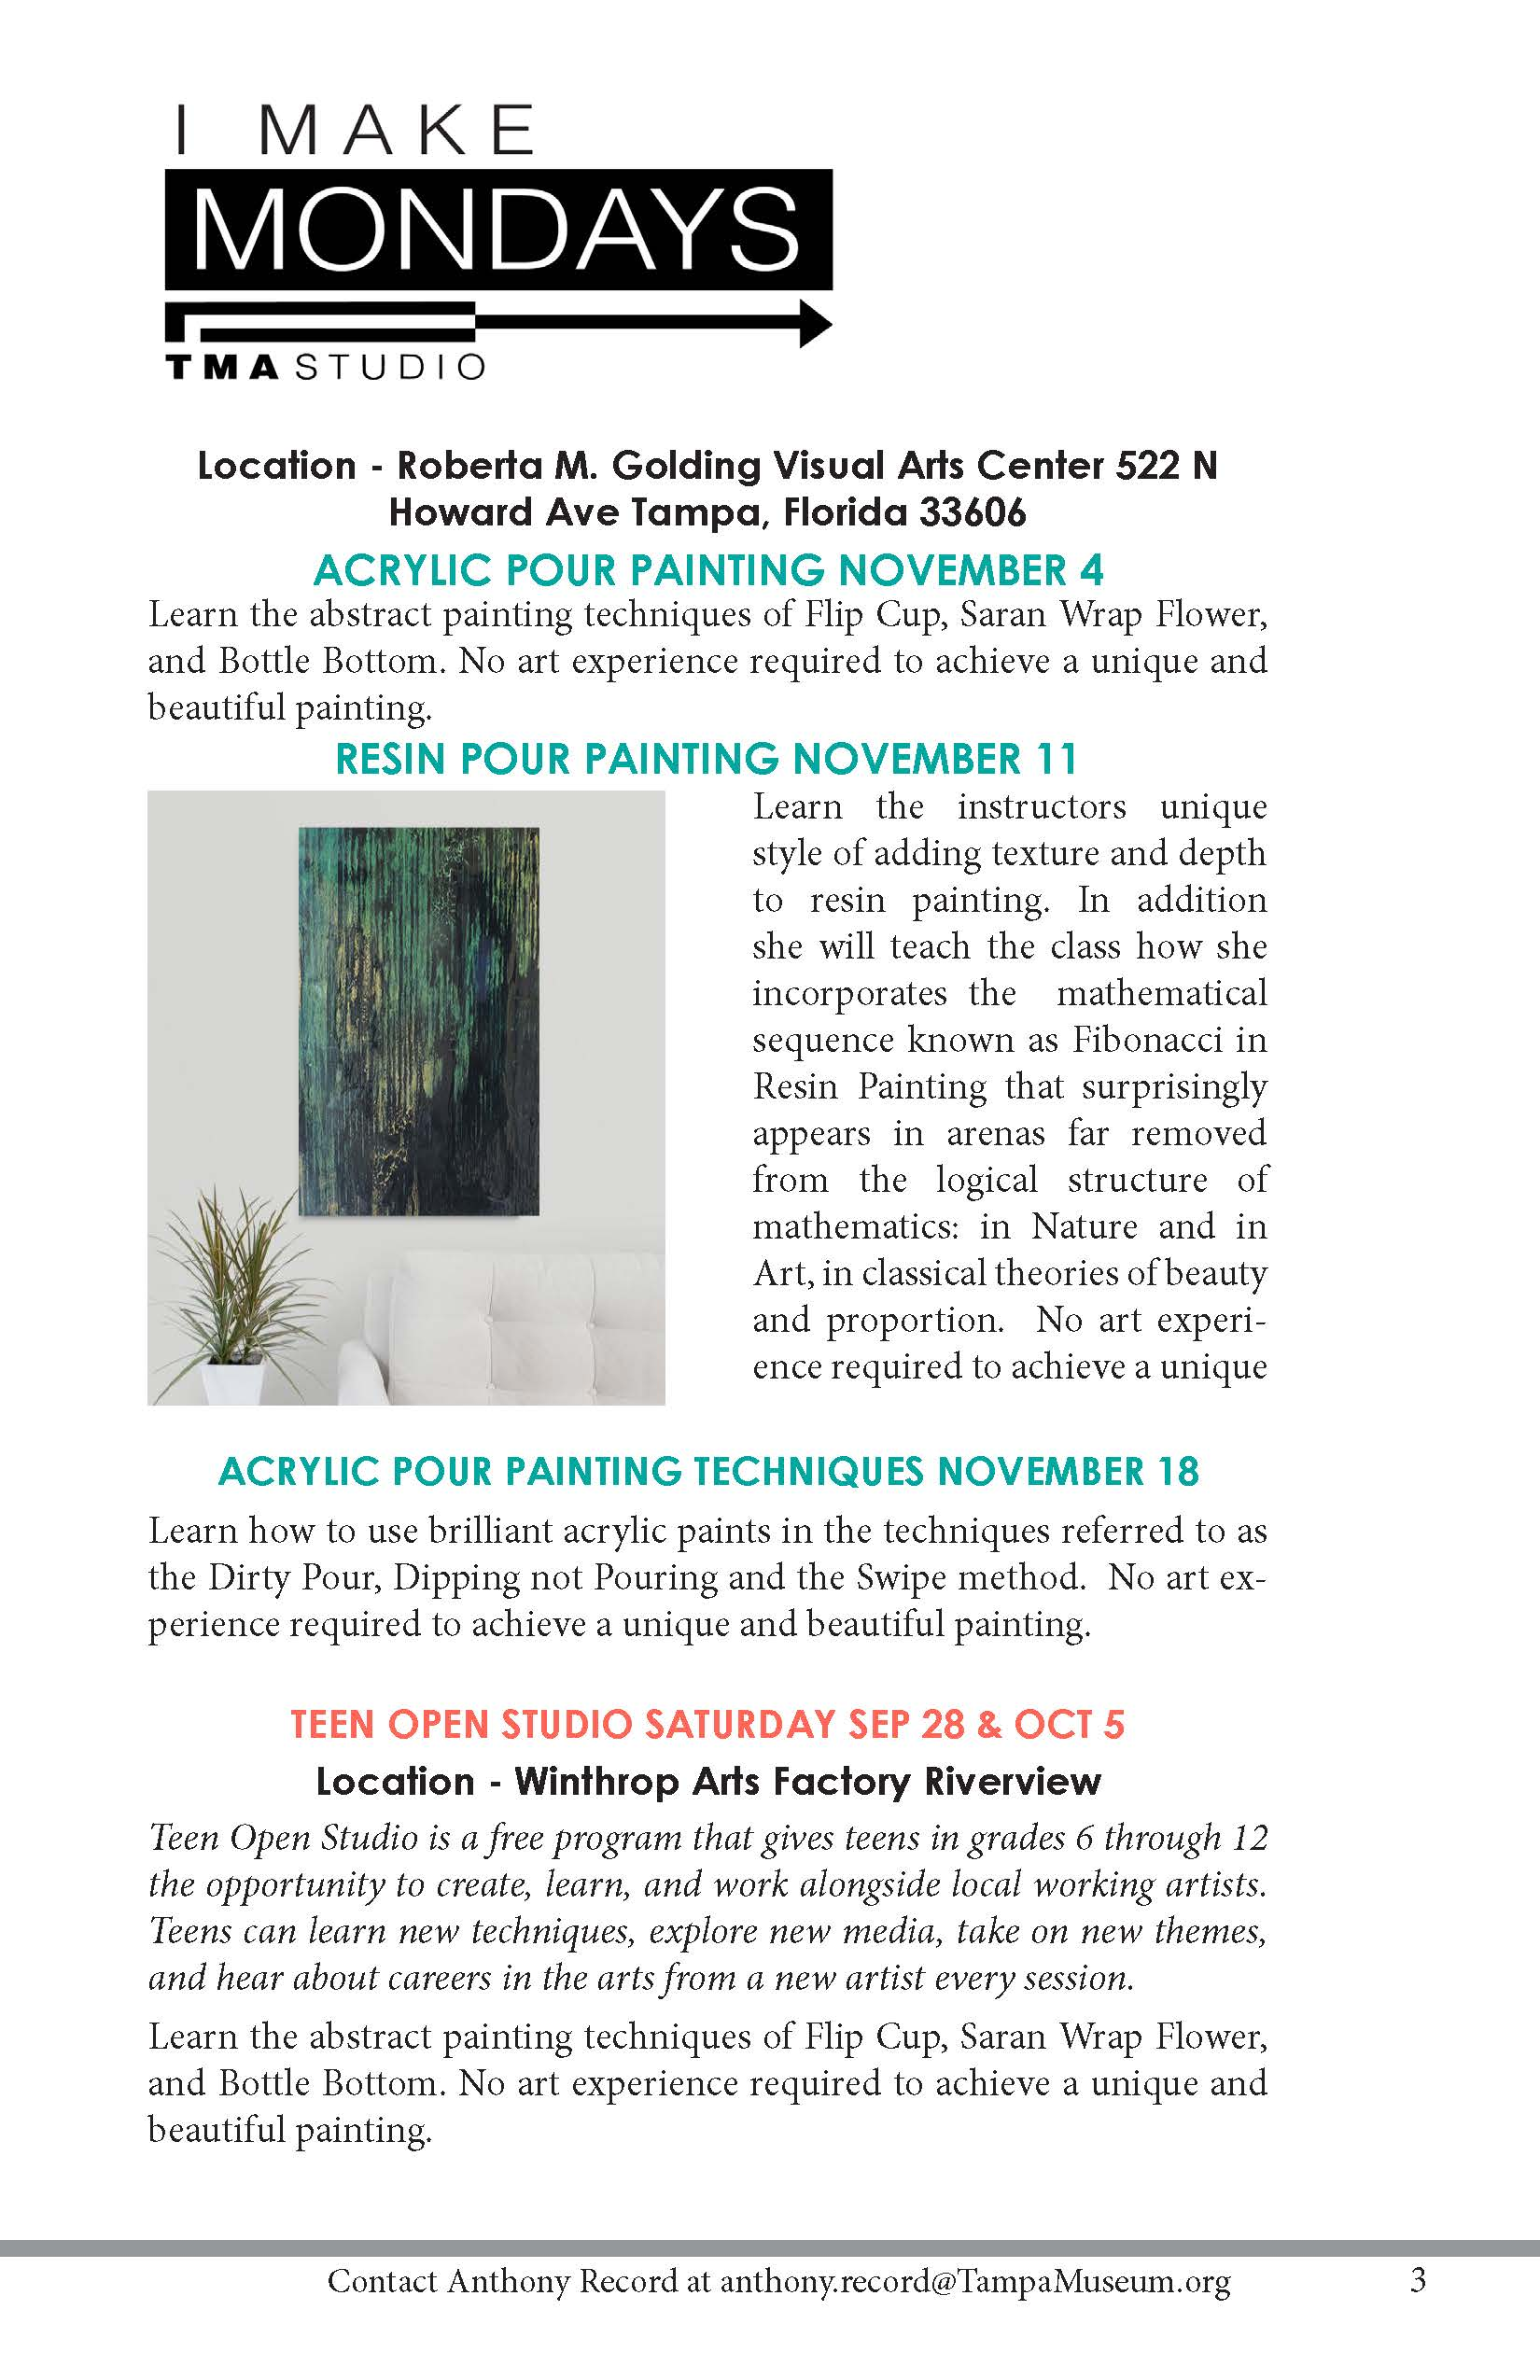 Tampa Museum of Art Resin and Acrylic Pour Painting Classes